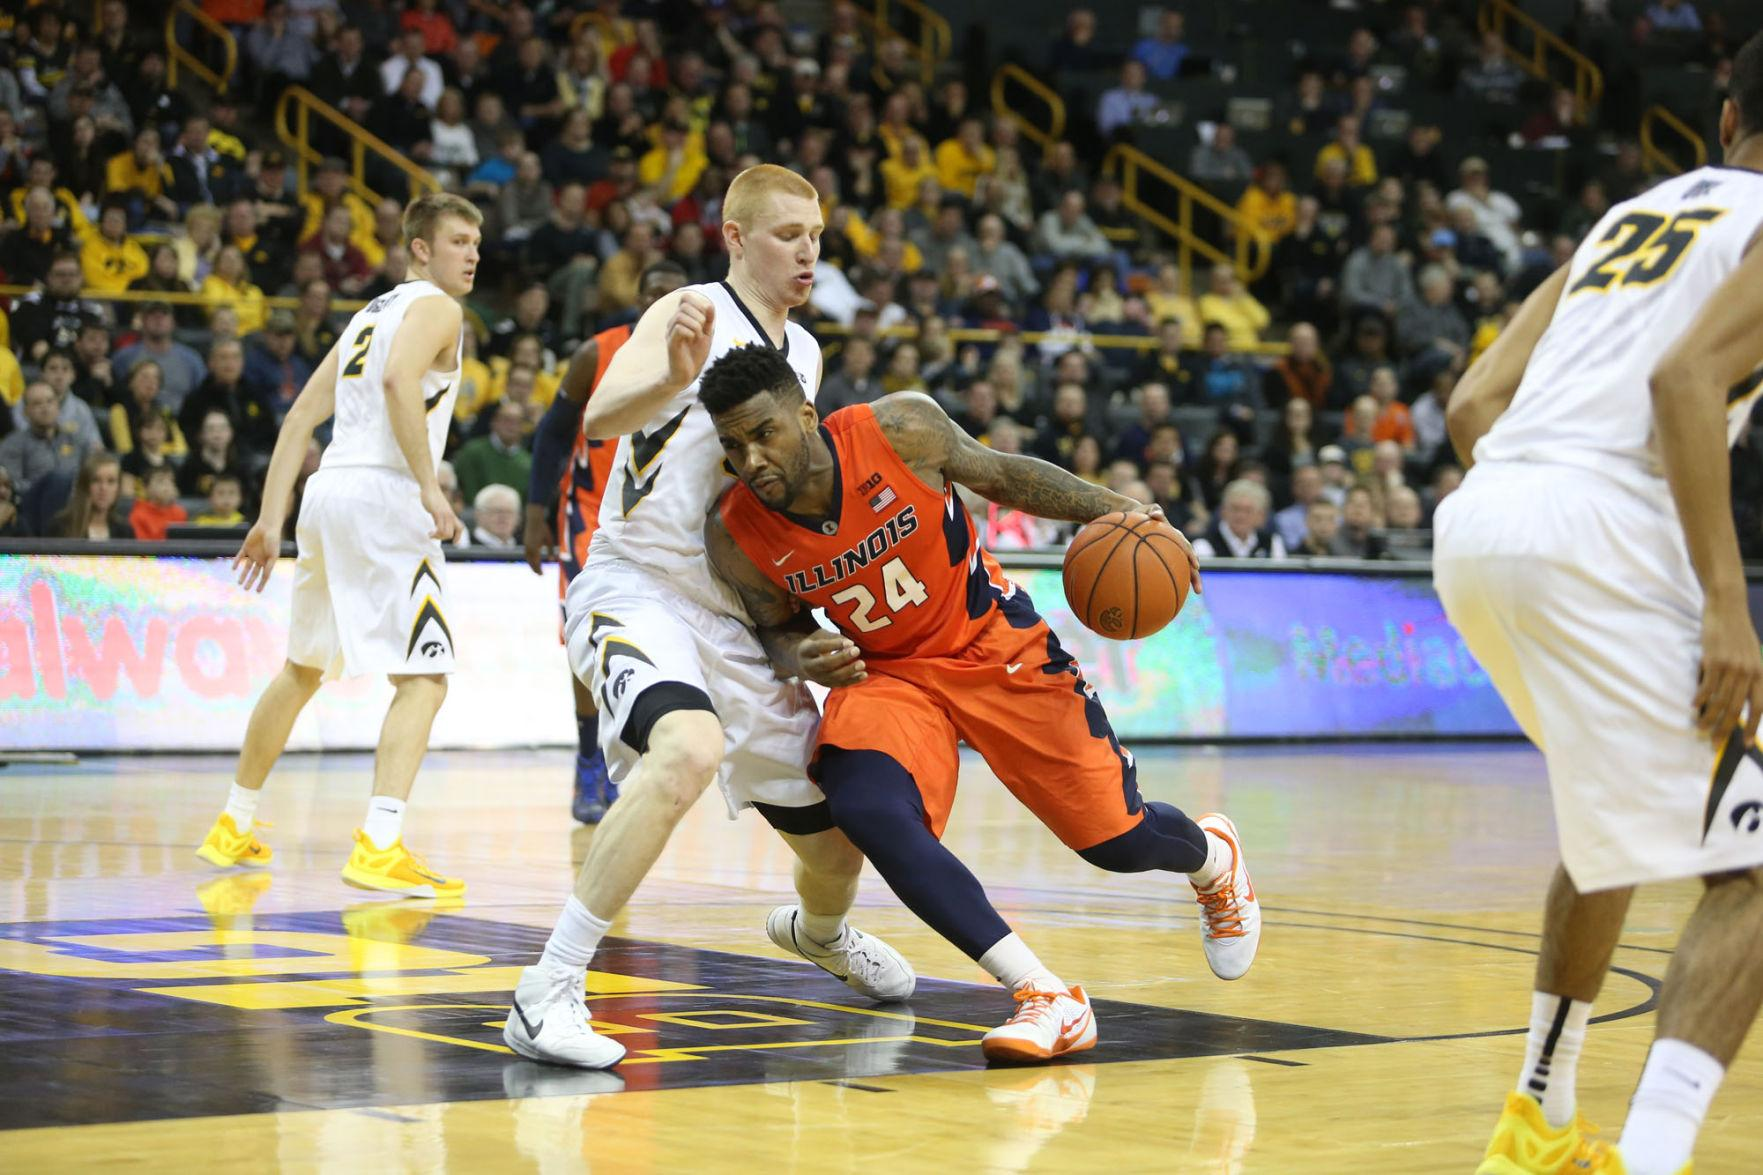 Illinois' Rayvonte Rice attempts to get past Iowa's defense during the game at Carver-Hawkeye Arena in Iowa City, Iowa on Wednesday.